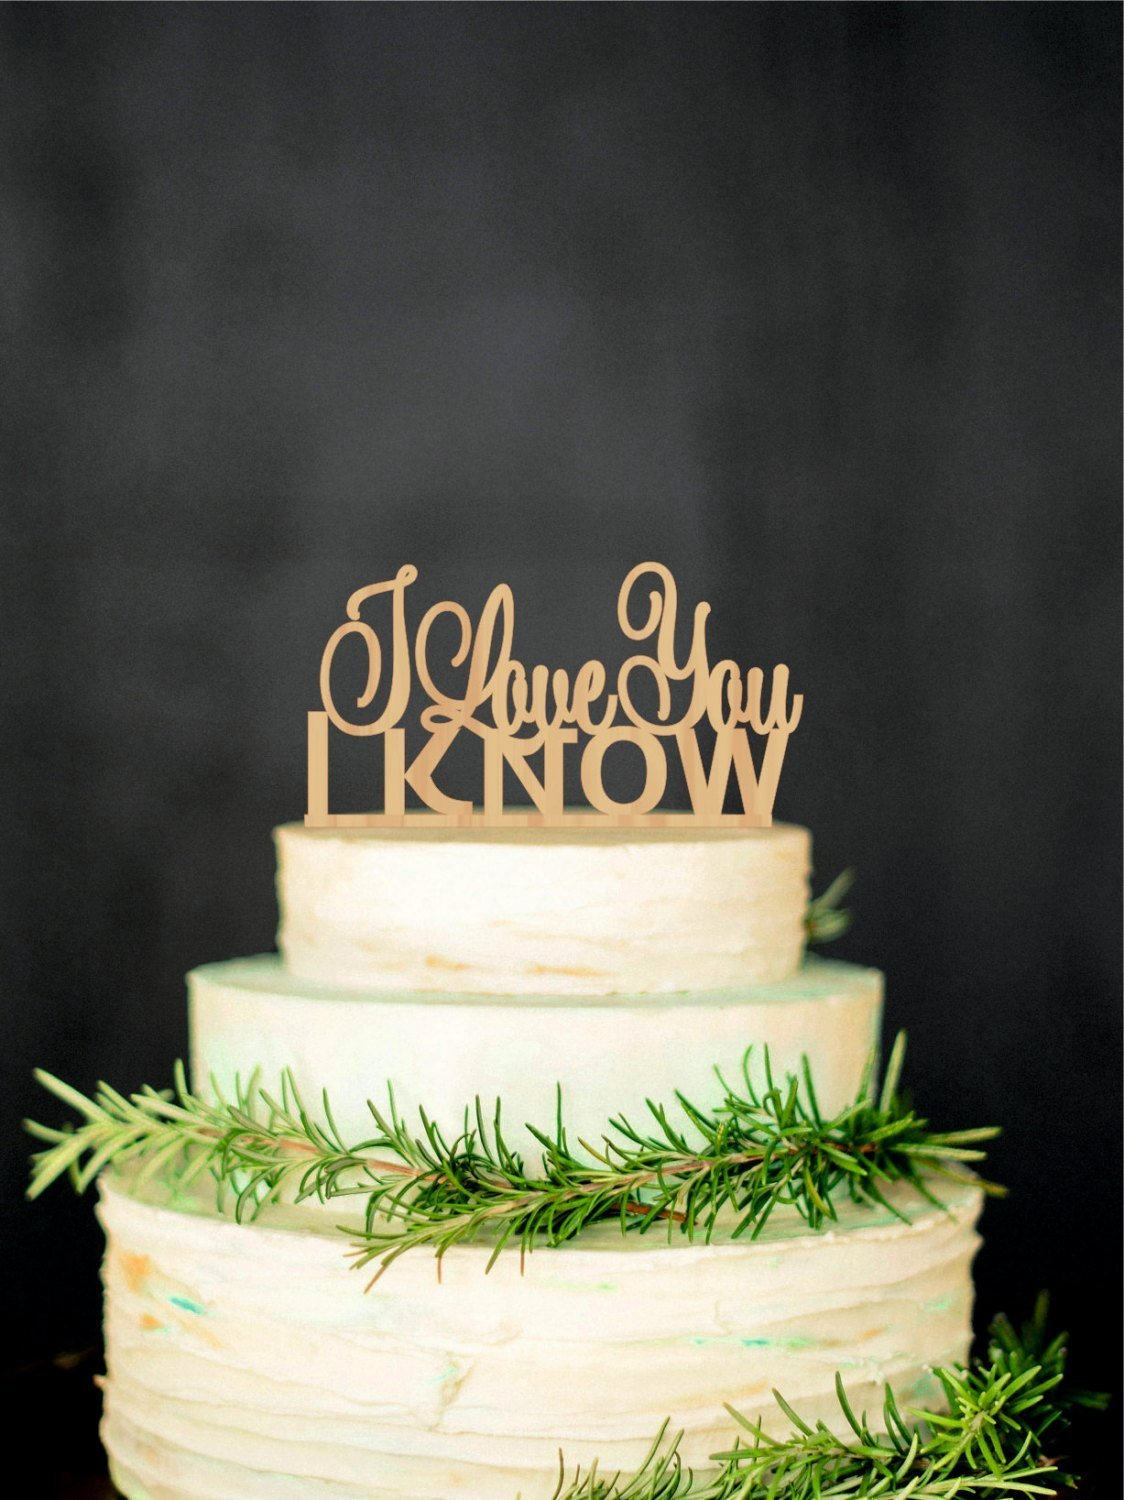 WTA1018 WTA - I Love you I Know Wedding Cake Topper Star Wars Inspired Wood Cake Topper